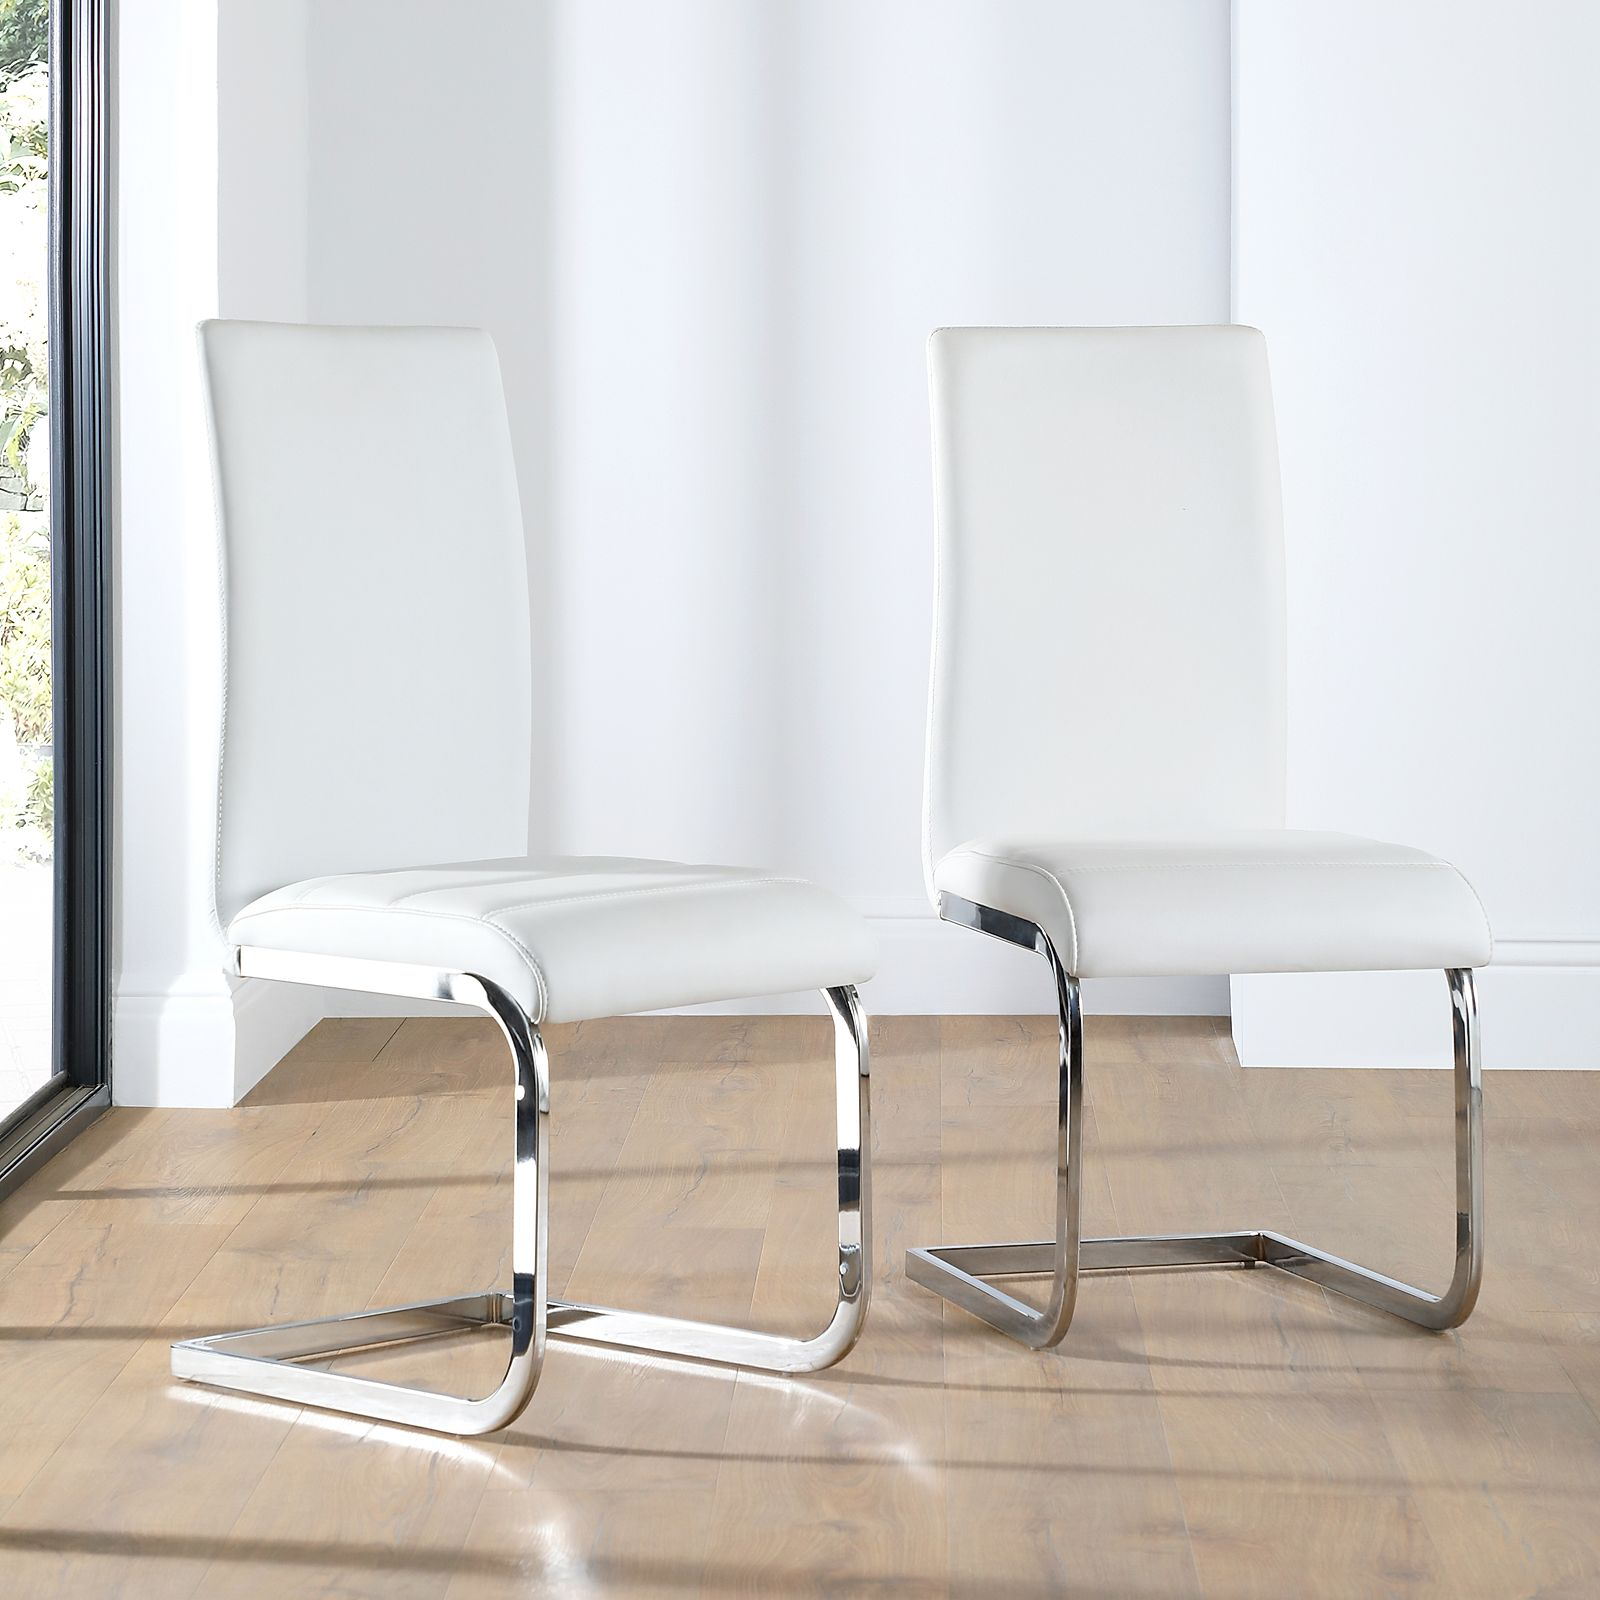 Fabulous Perth Leather Dining Chair White Caraccident5 Cool Chair Designs And Ideas Caraccident5Info